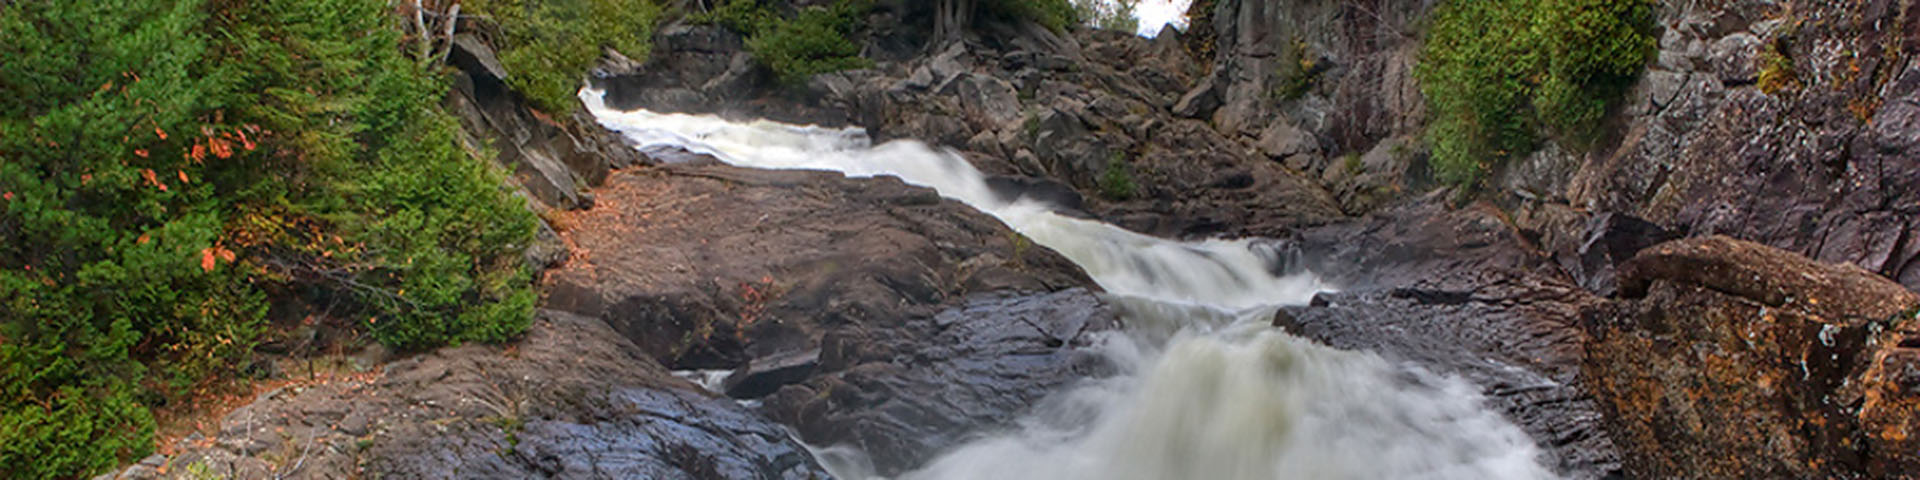 Ragged Falls Day Trip by Algonquin Outfitters - Image 315